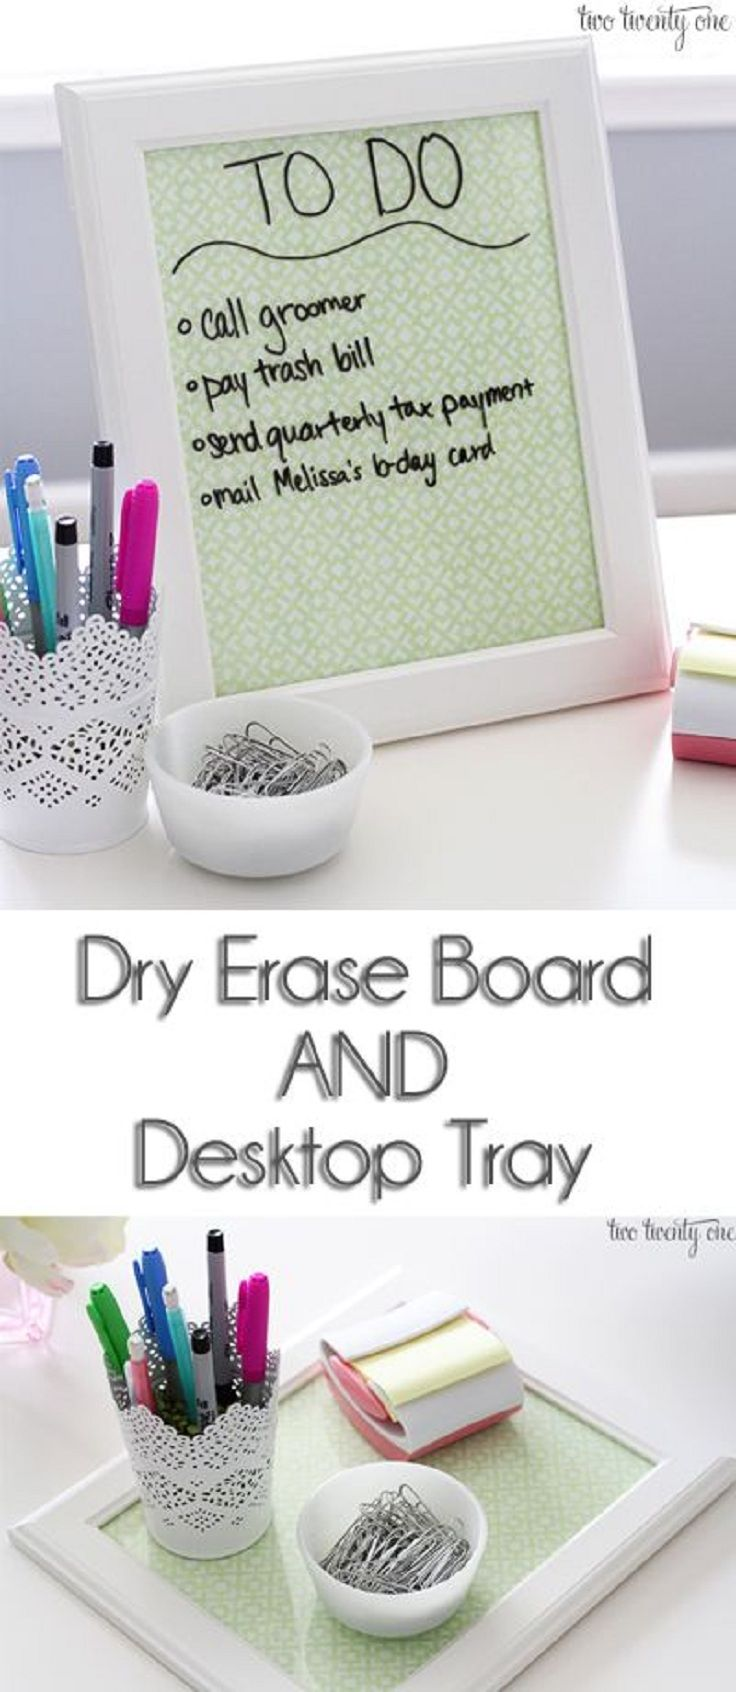 Top 10 DIY Office Organization Tutorials | Studio ideas | Pinterest ...